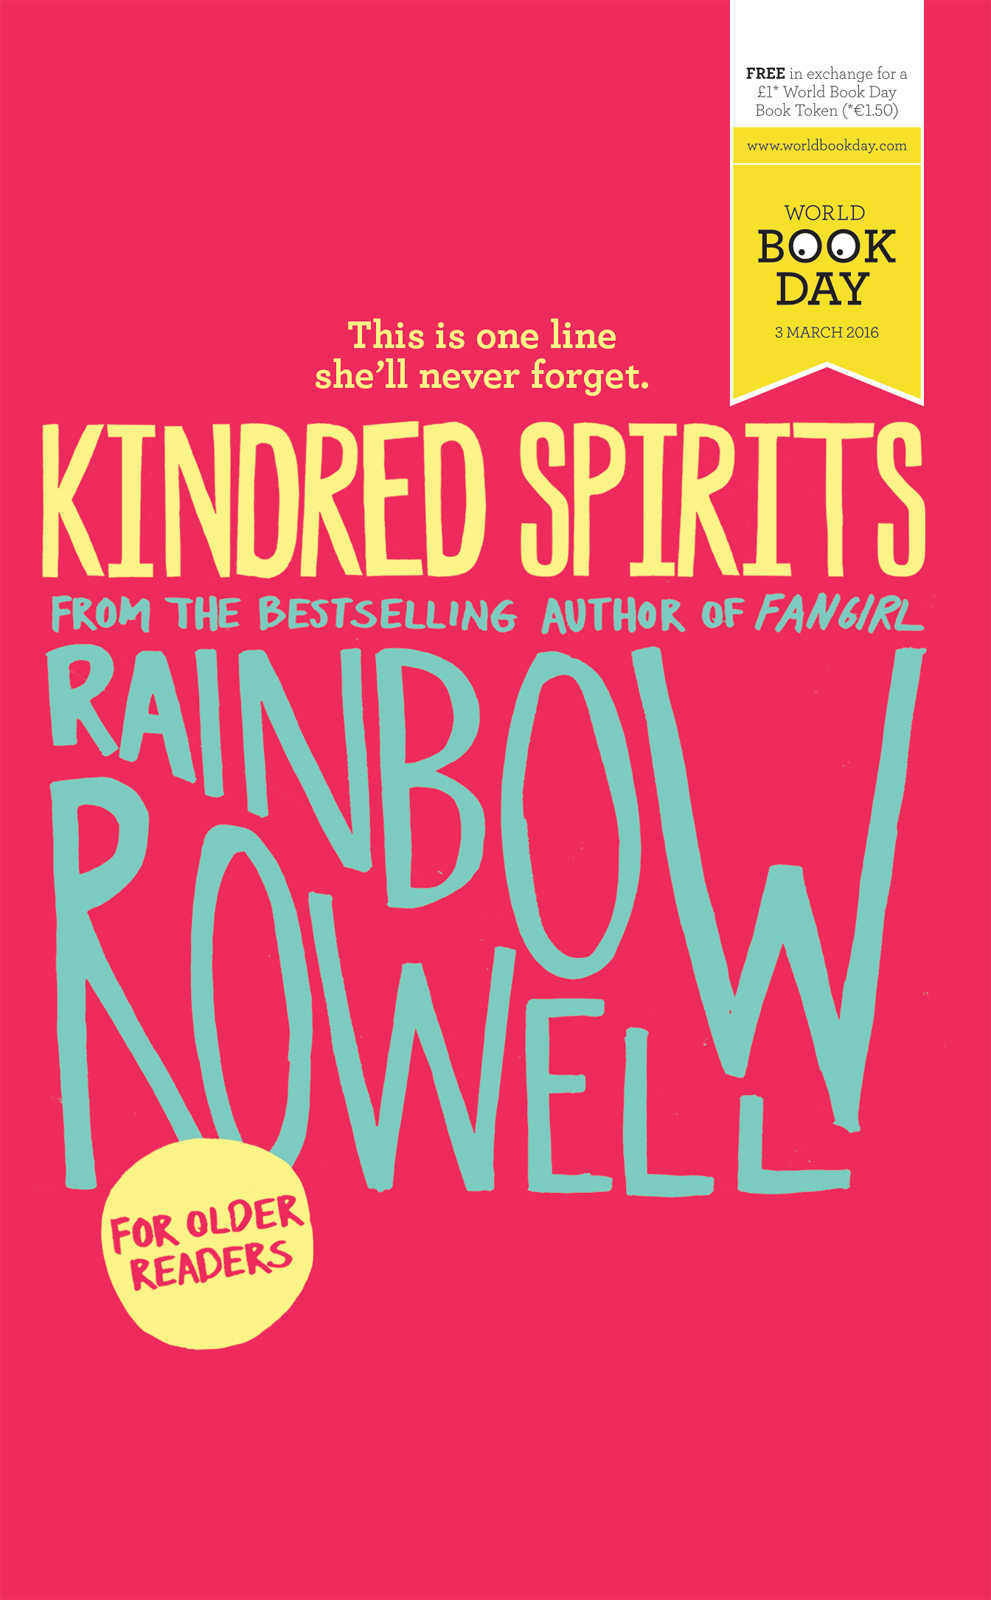 World Book Day Offerings from Rainbow Rowell and Juno Dawson